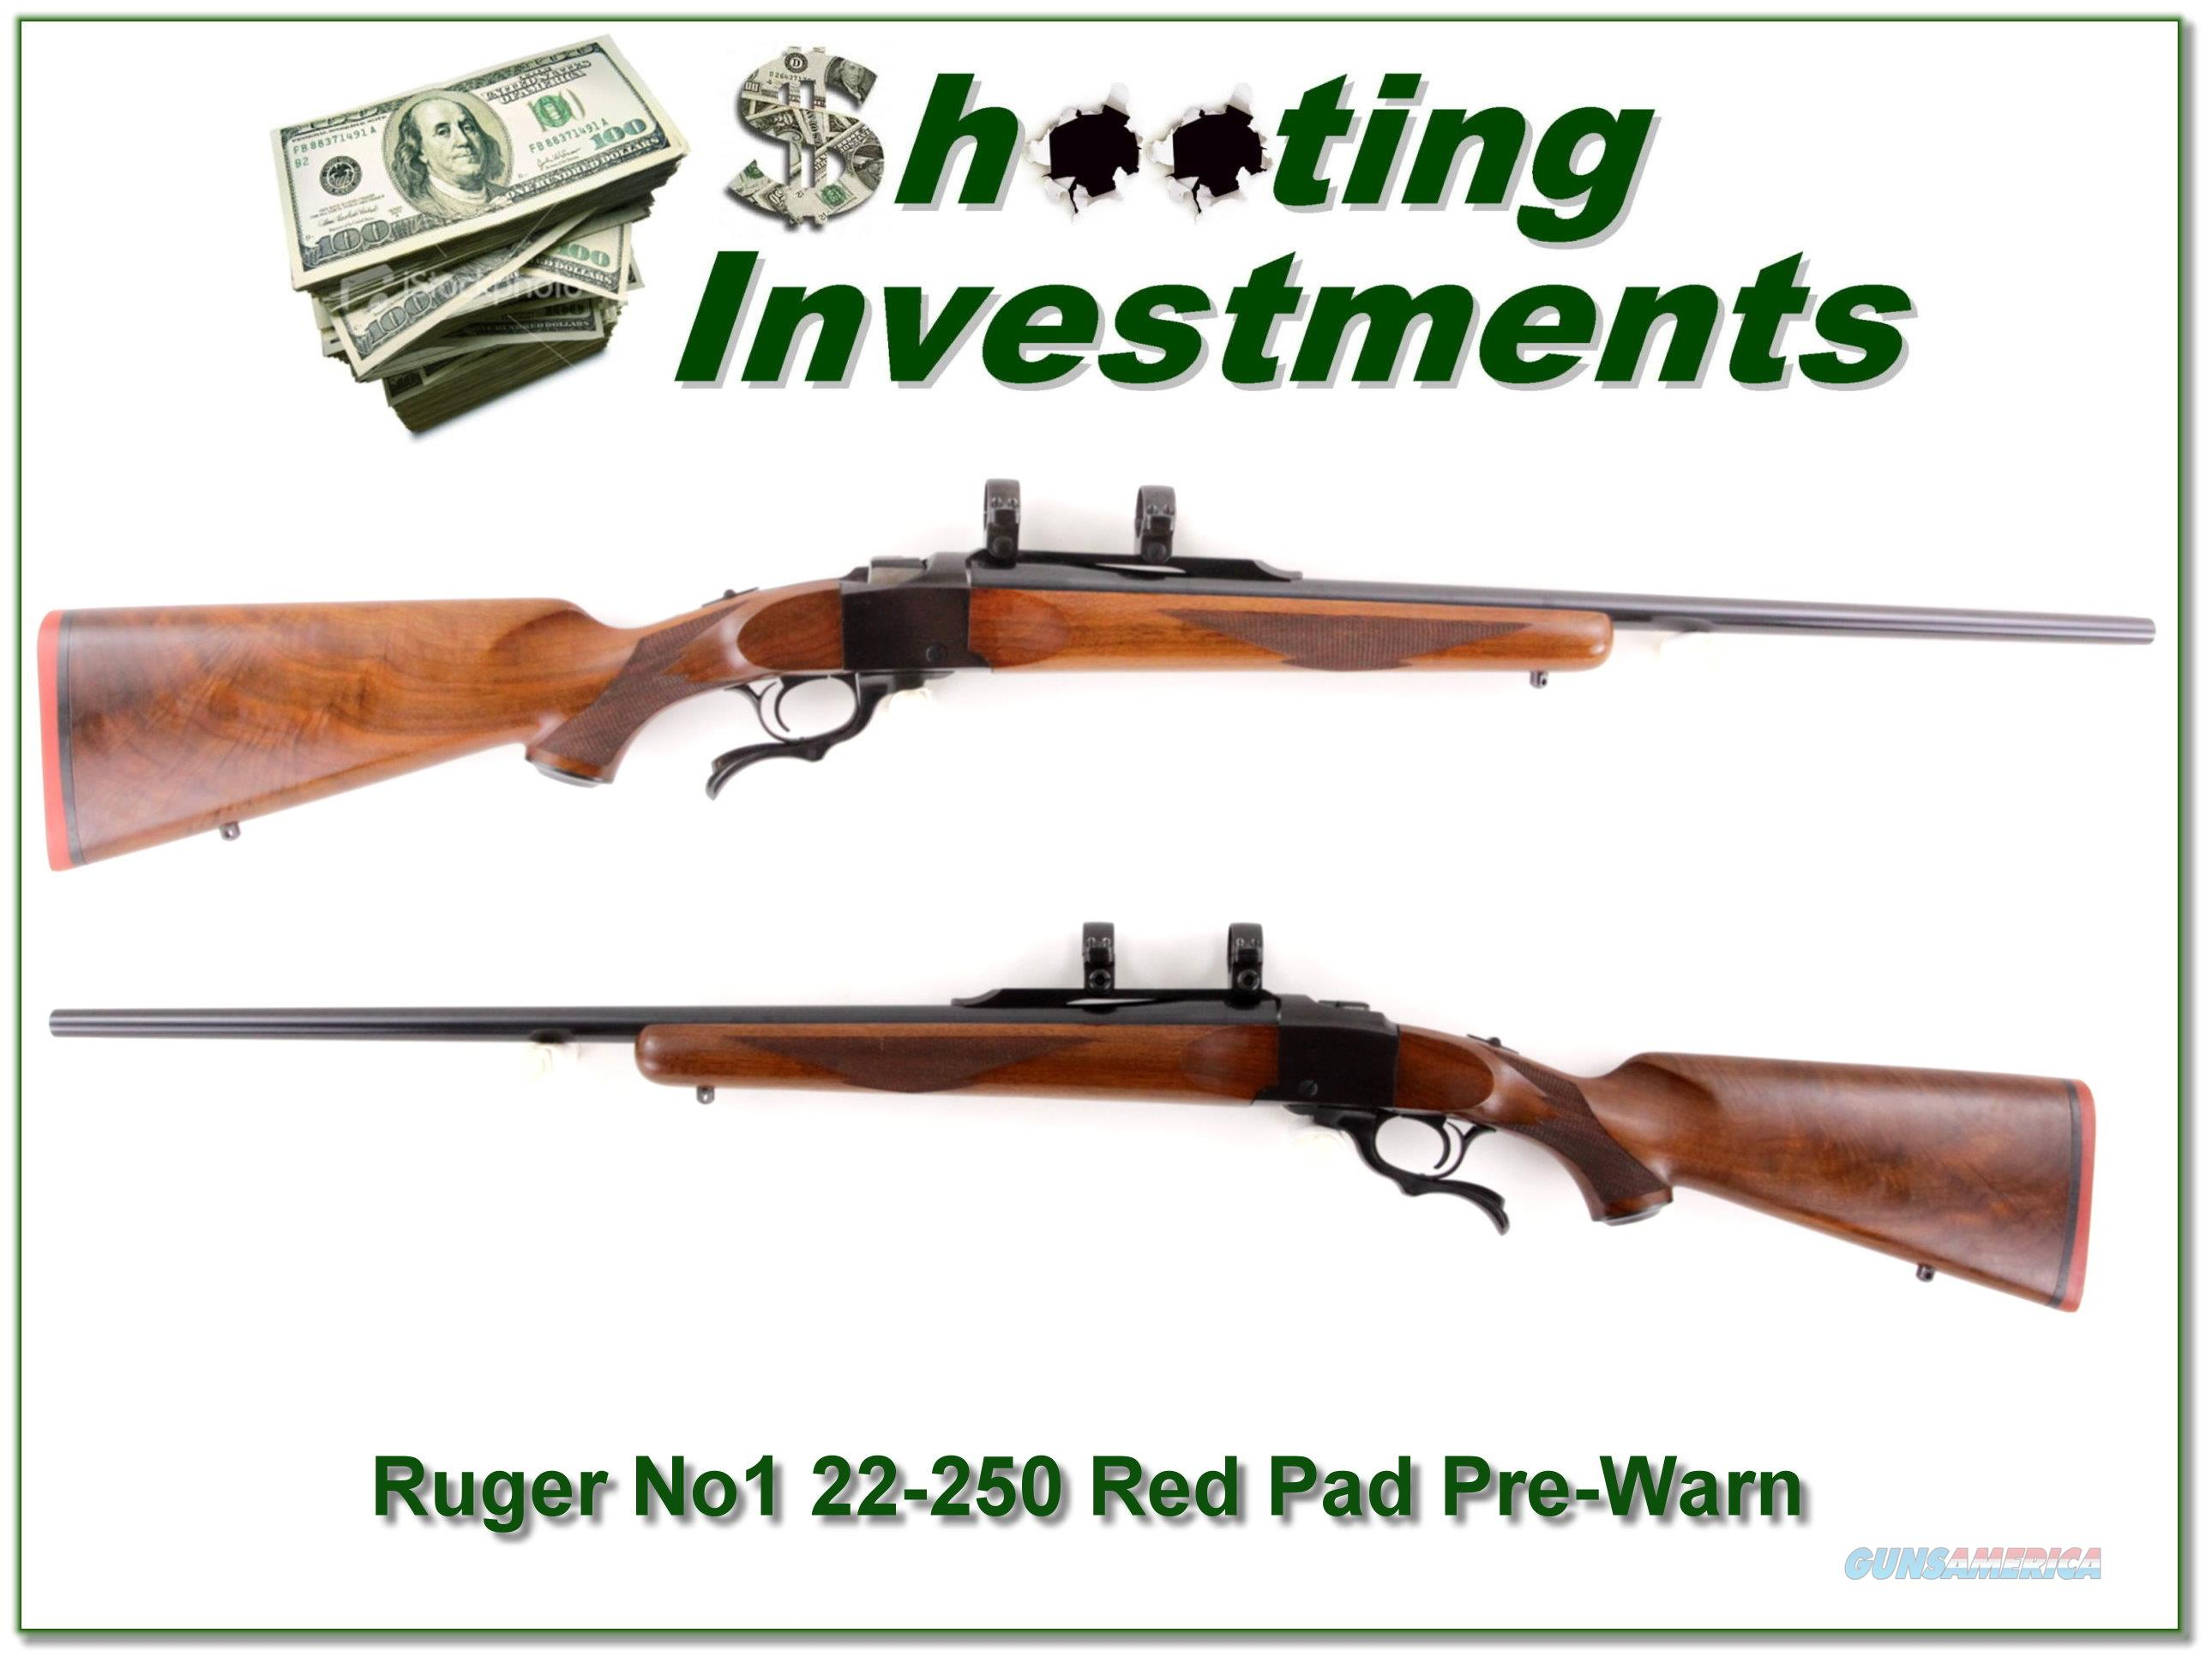 Ruger No.1 Red Pad Pre-Warning 22-250 collector  Guns > Rifles > Ruger Rifles > #1 Type